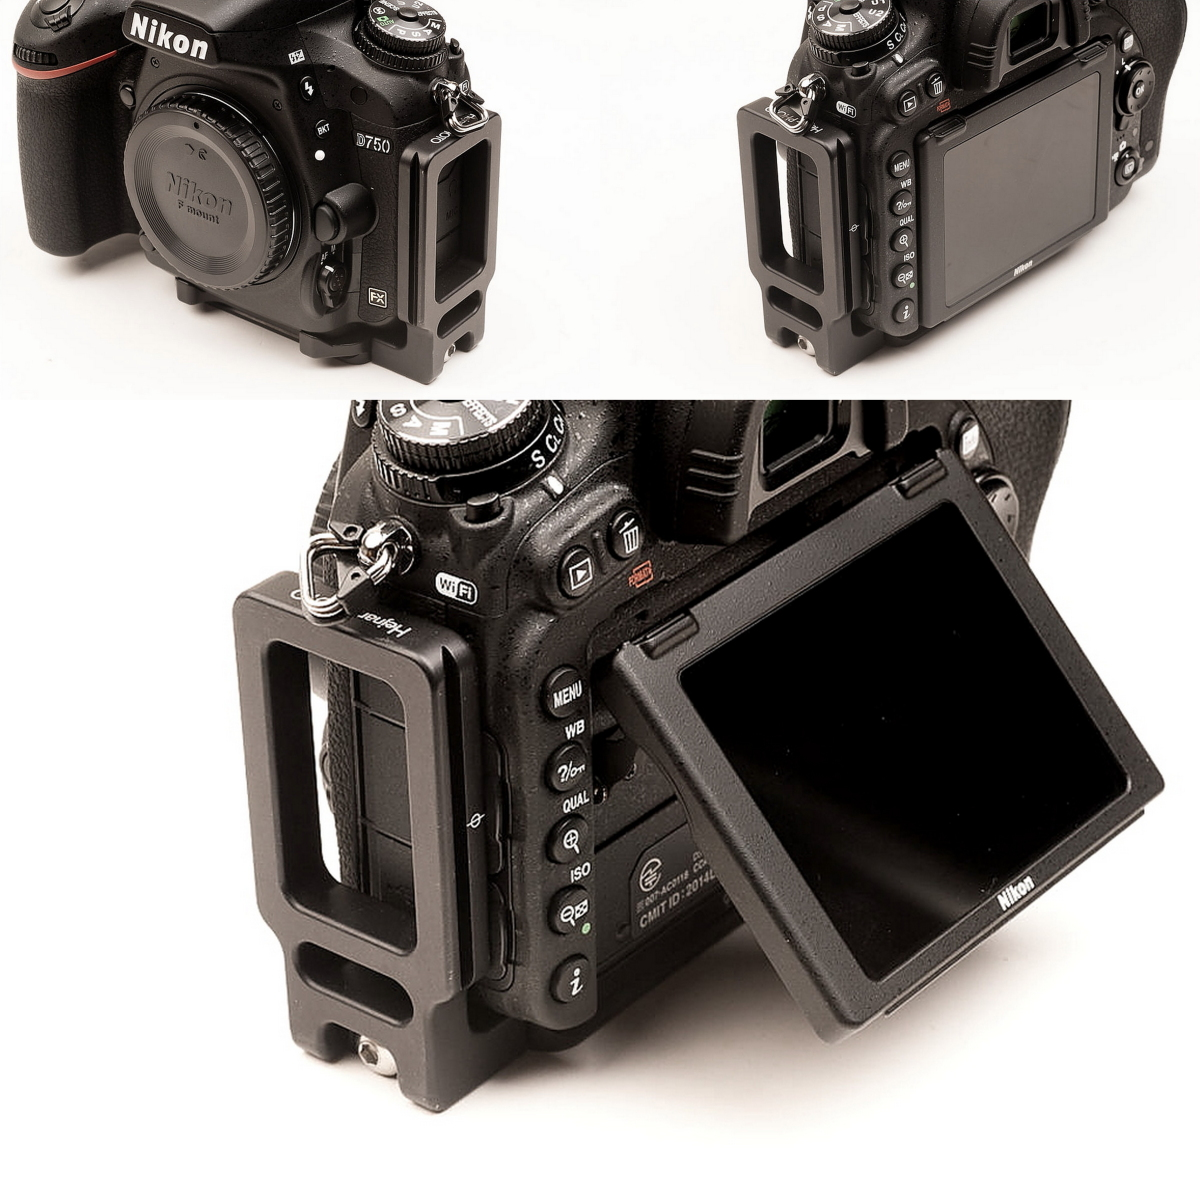 Hejnar PHOTO ND750 L bracket on Nikon D750 front - side - rear views